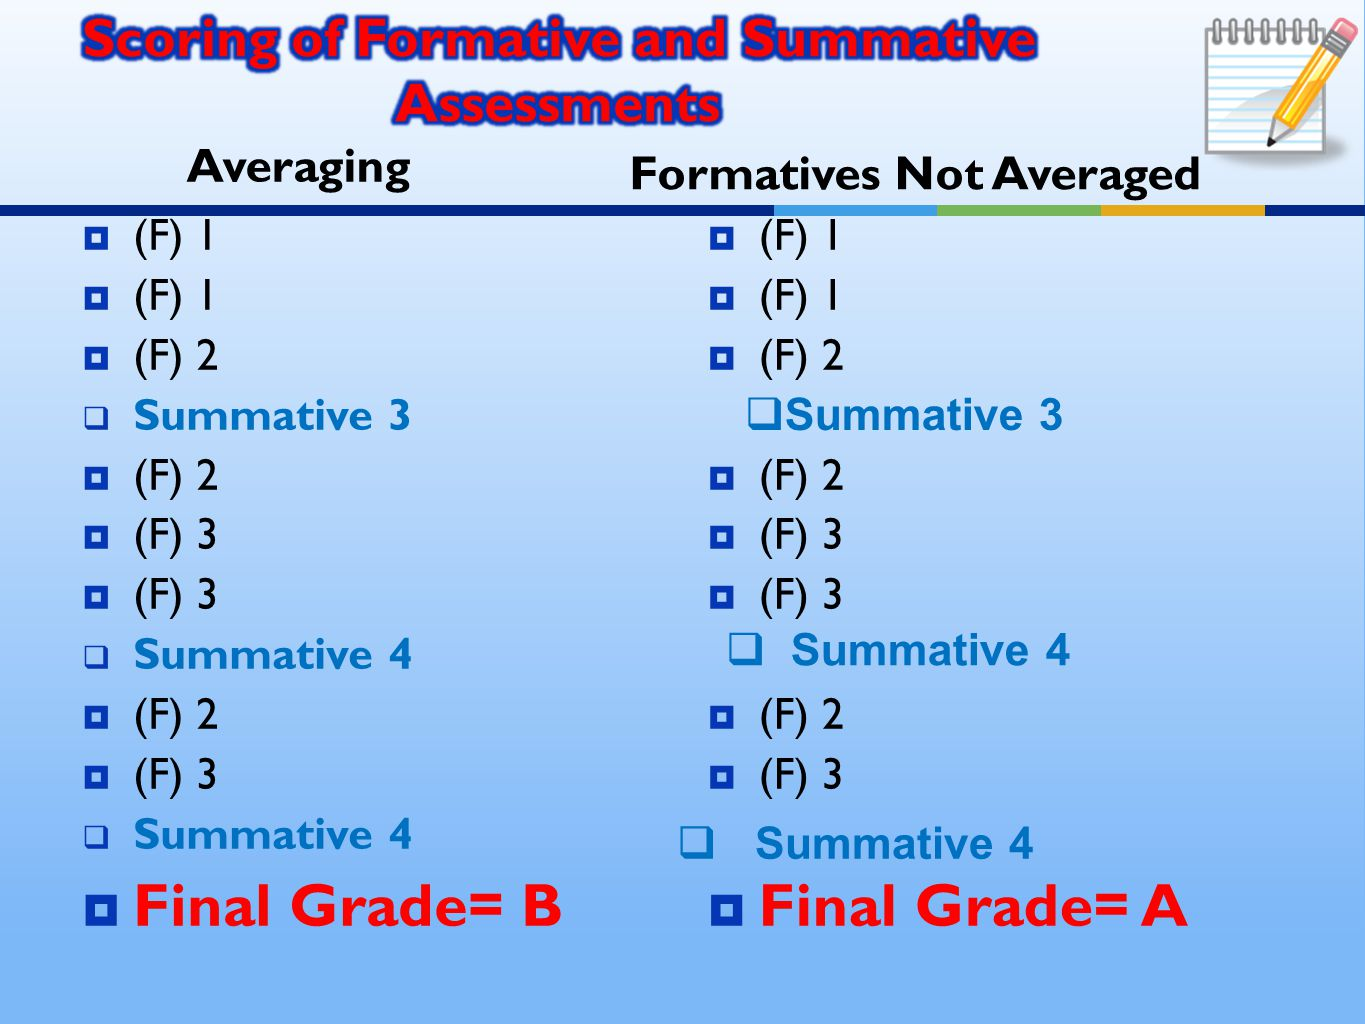 Averaging  (F) 1  (F) 2  Summative 3  (F) 2  (F) 3  Summative 4  (F) 2  (F) 3  Summative 4  Final Grade= B Formatives Not Averaged  (F) 1  (F) 2  (F) 3  (F) 2  (F) 3  Final Grade= A  Summative 3  Summative 4